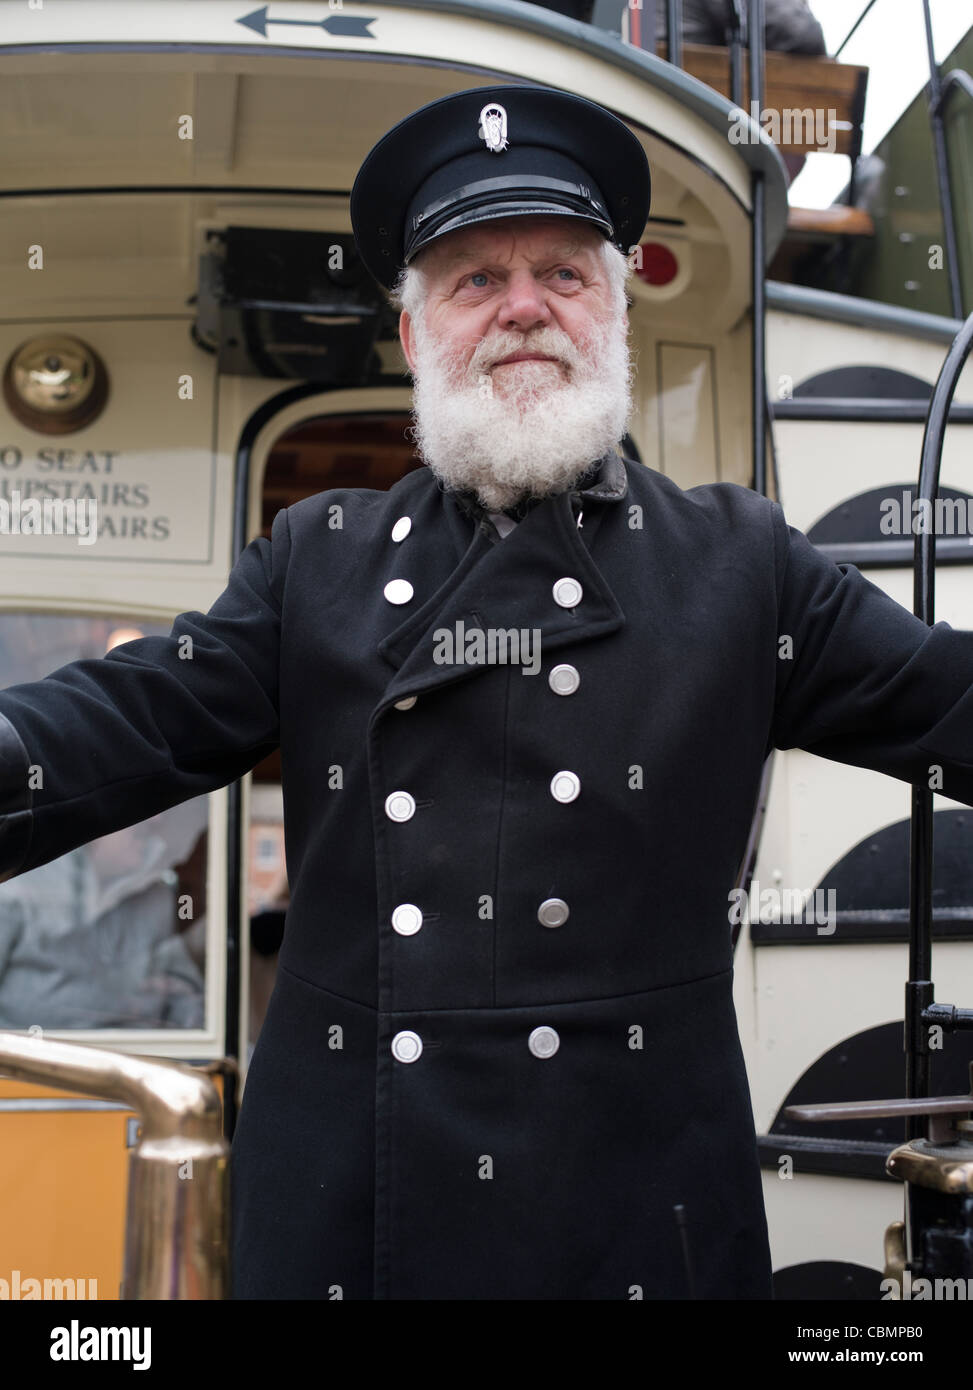 Tram conductor. Beamish, The North of England Open Air Museum County Durham ENGLAND - Stock Image